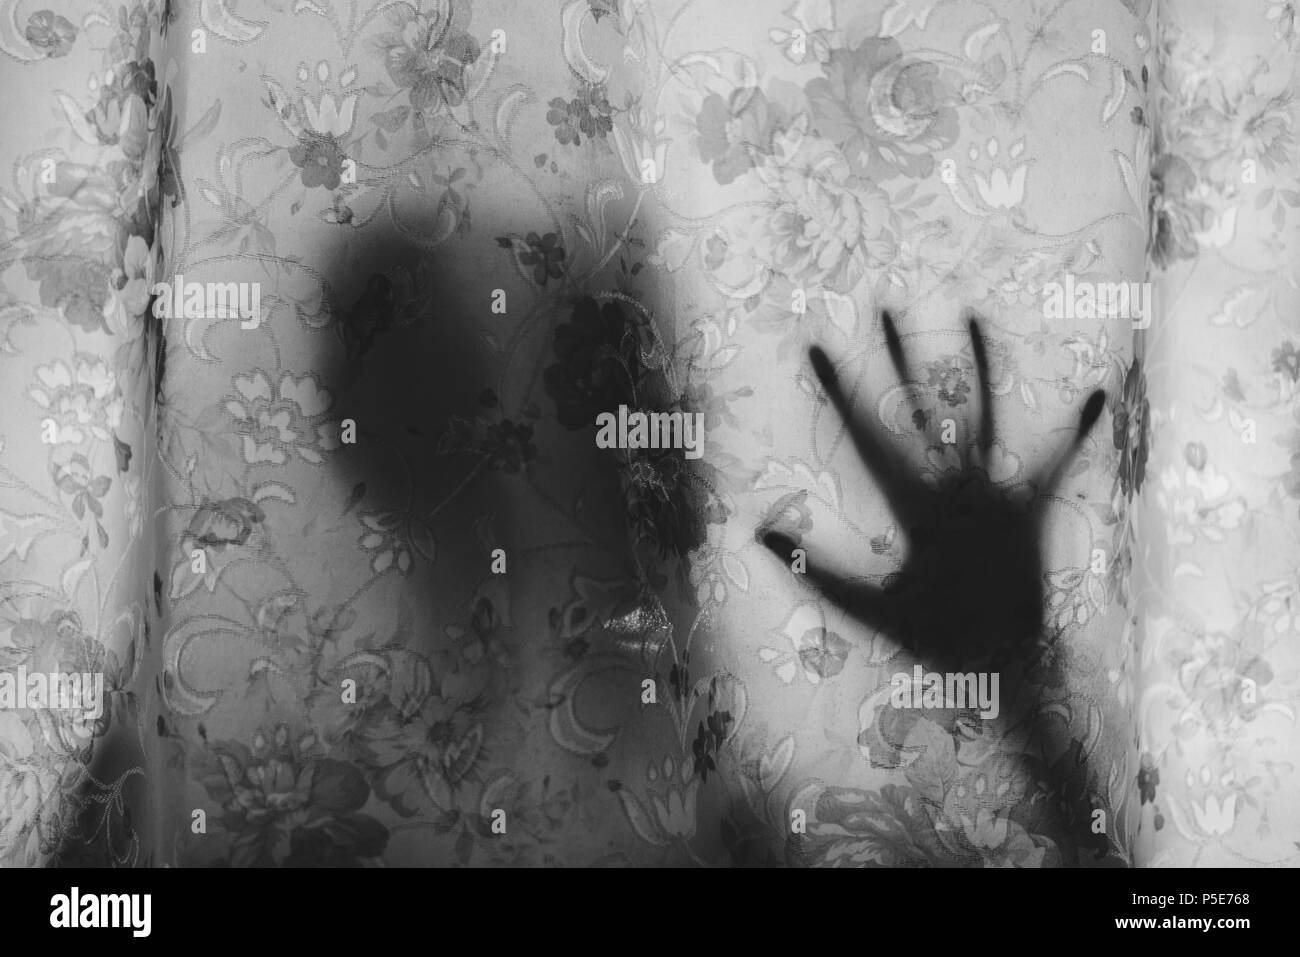 Black and white image of mysterious human shadow behind a curtain. fear, Mystery, scary, creepy and paranormal concept - Stock Image